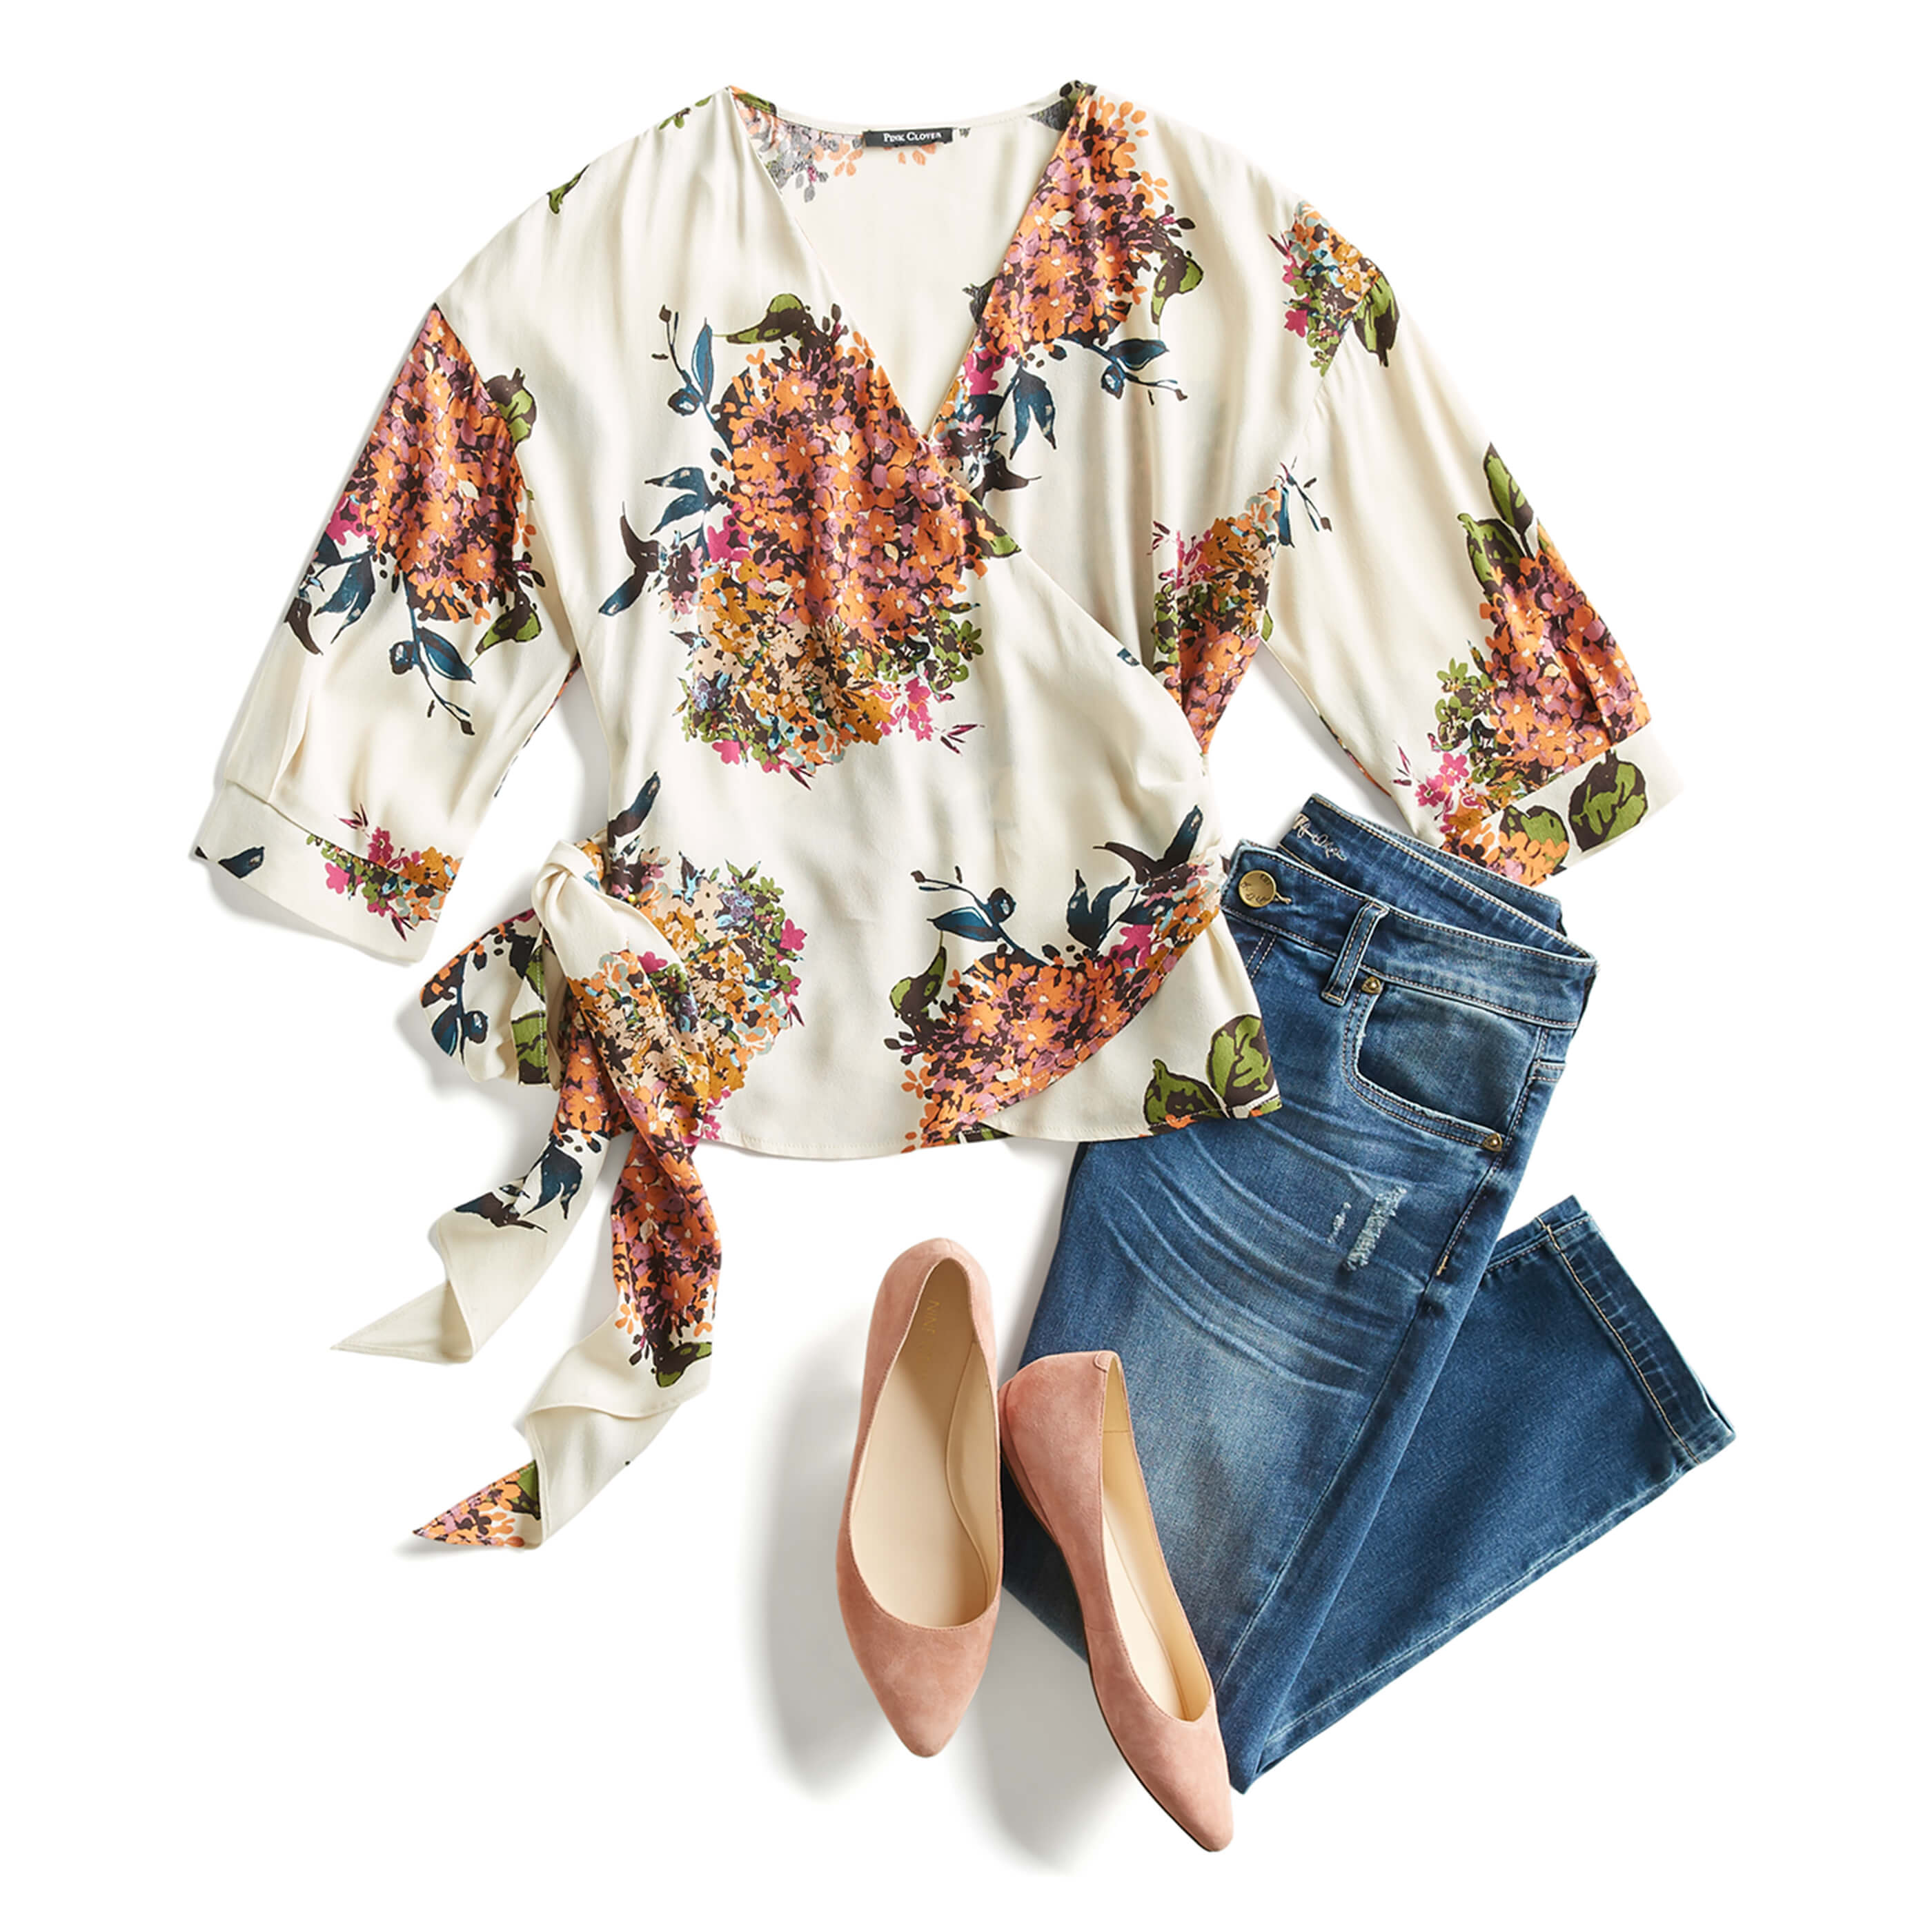 ae337ad7d Are there summer tops that work for busty women? | Stitch Fix Blog ...